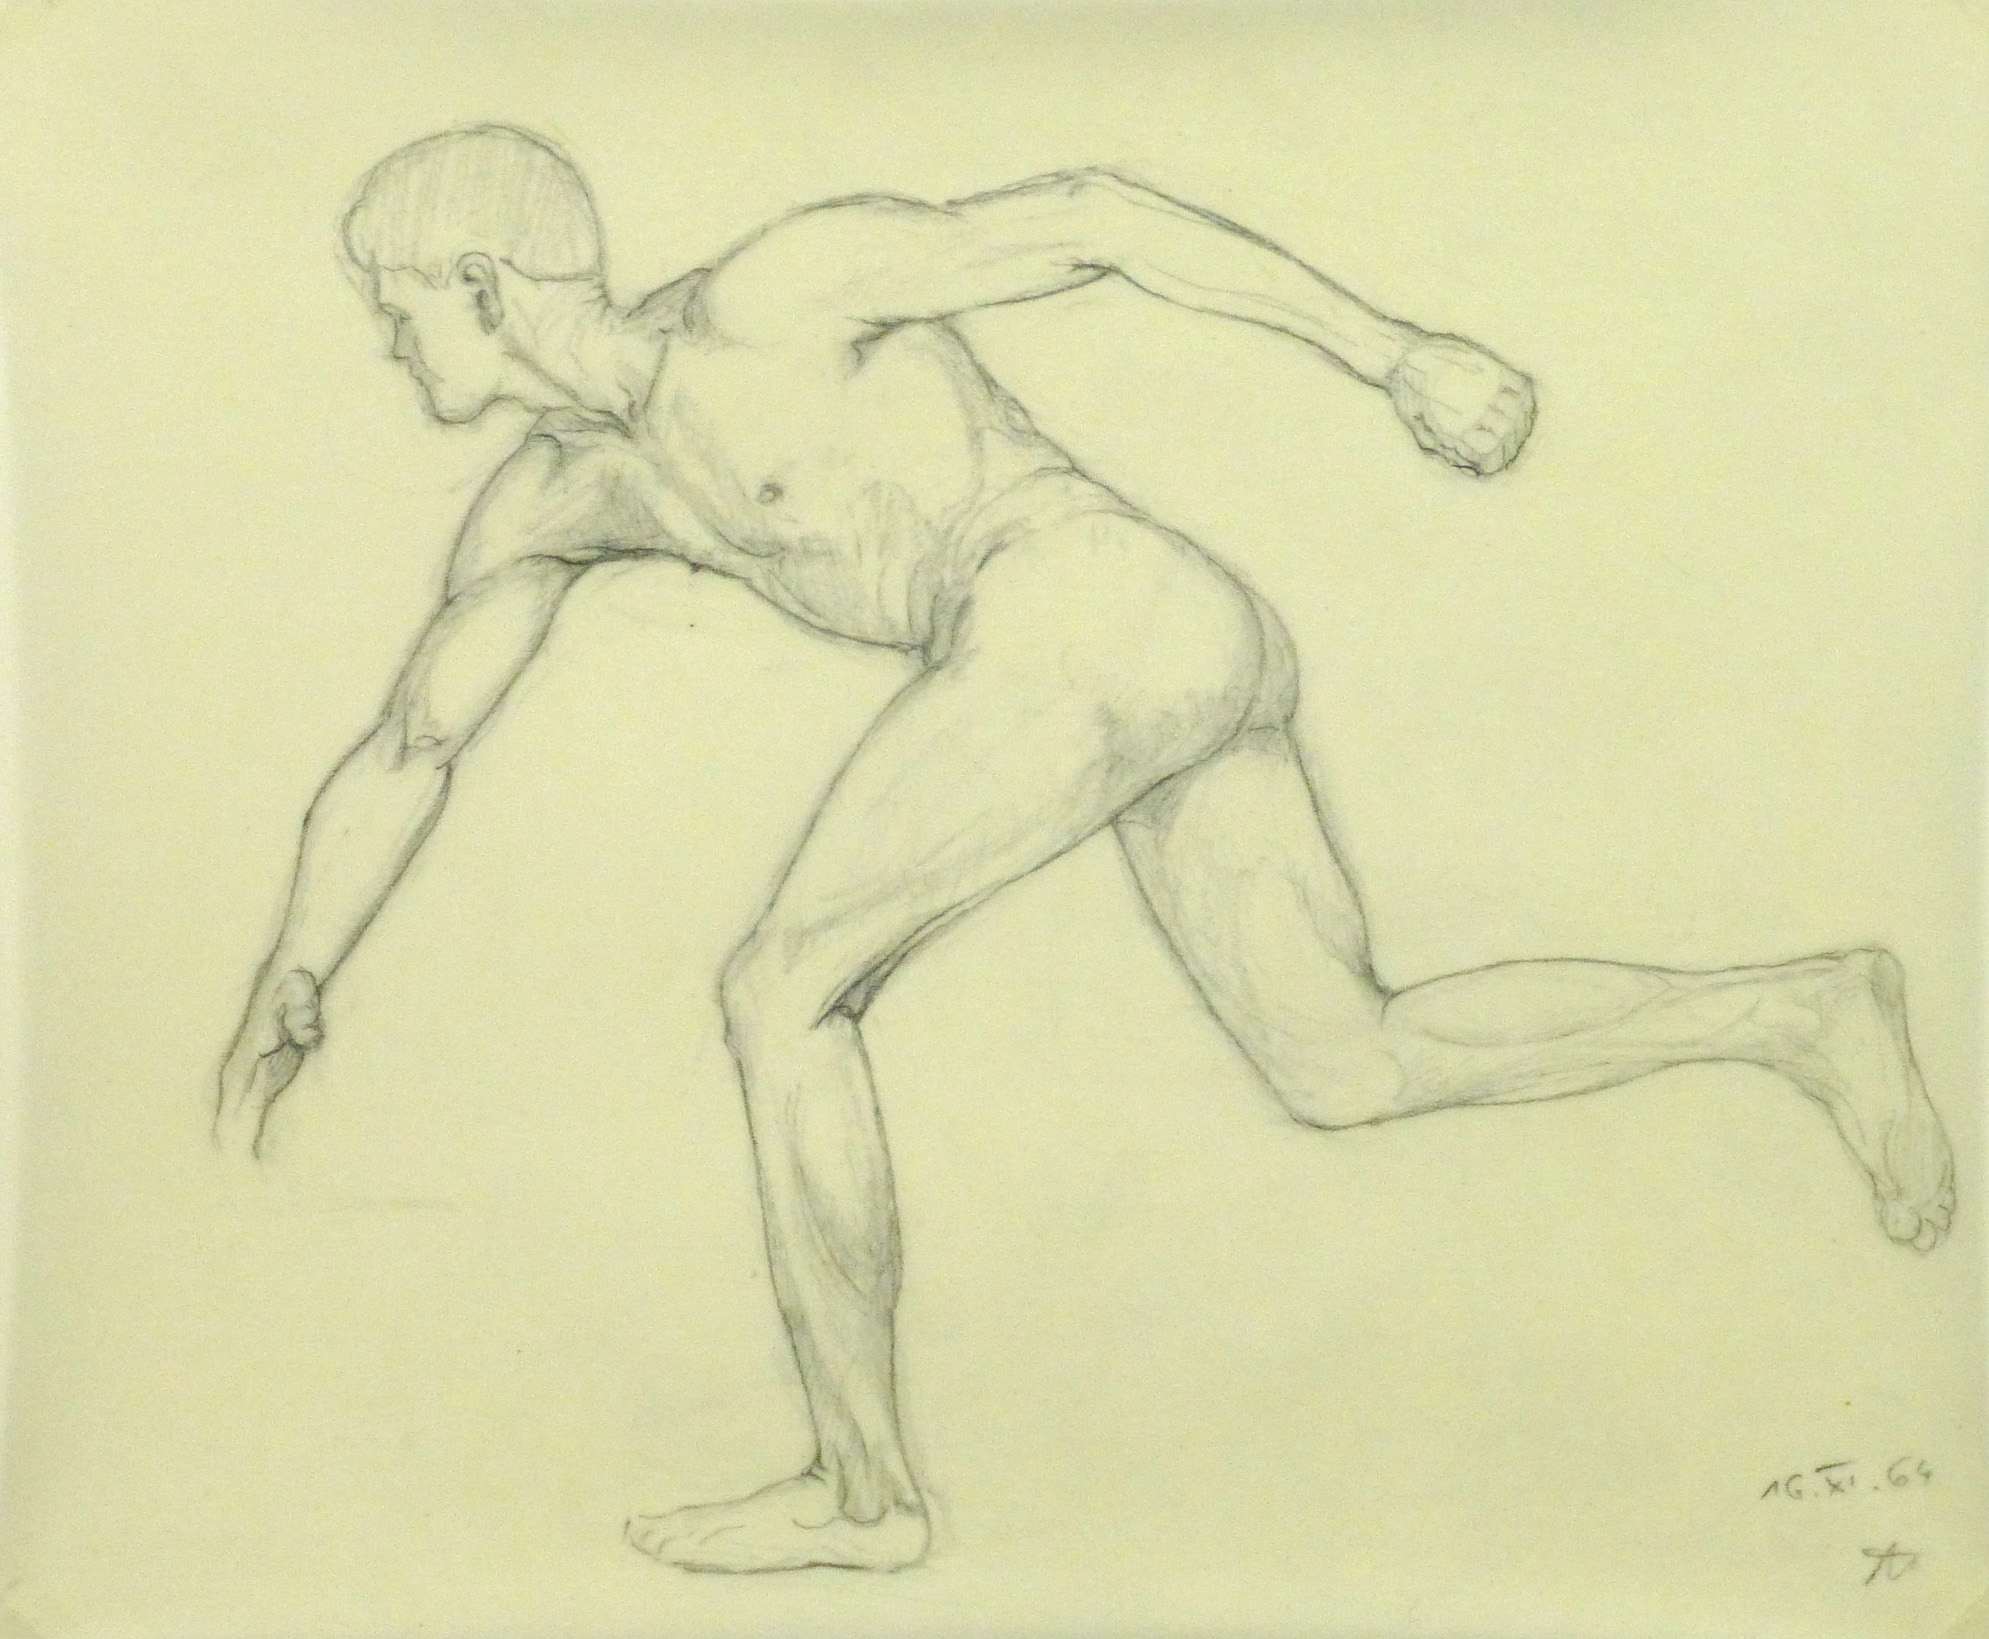 Drawing - Nude Male Athlete - Main- 9956M